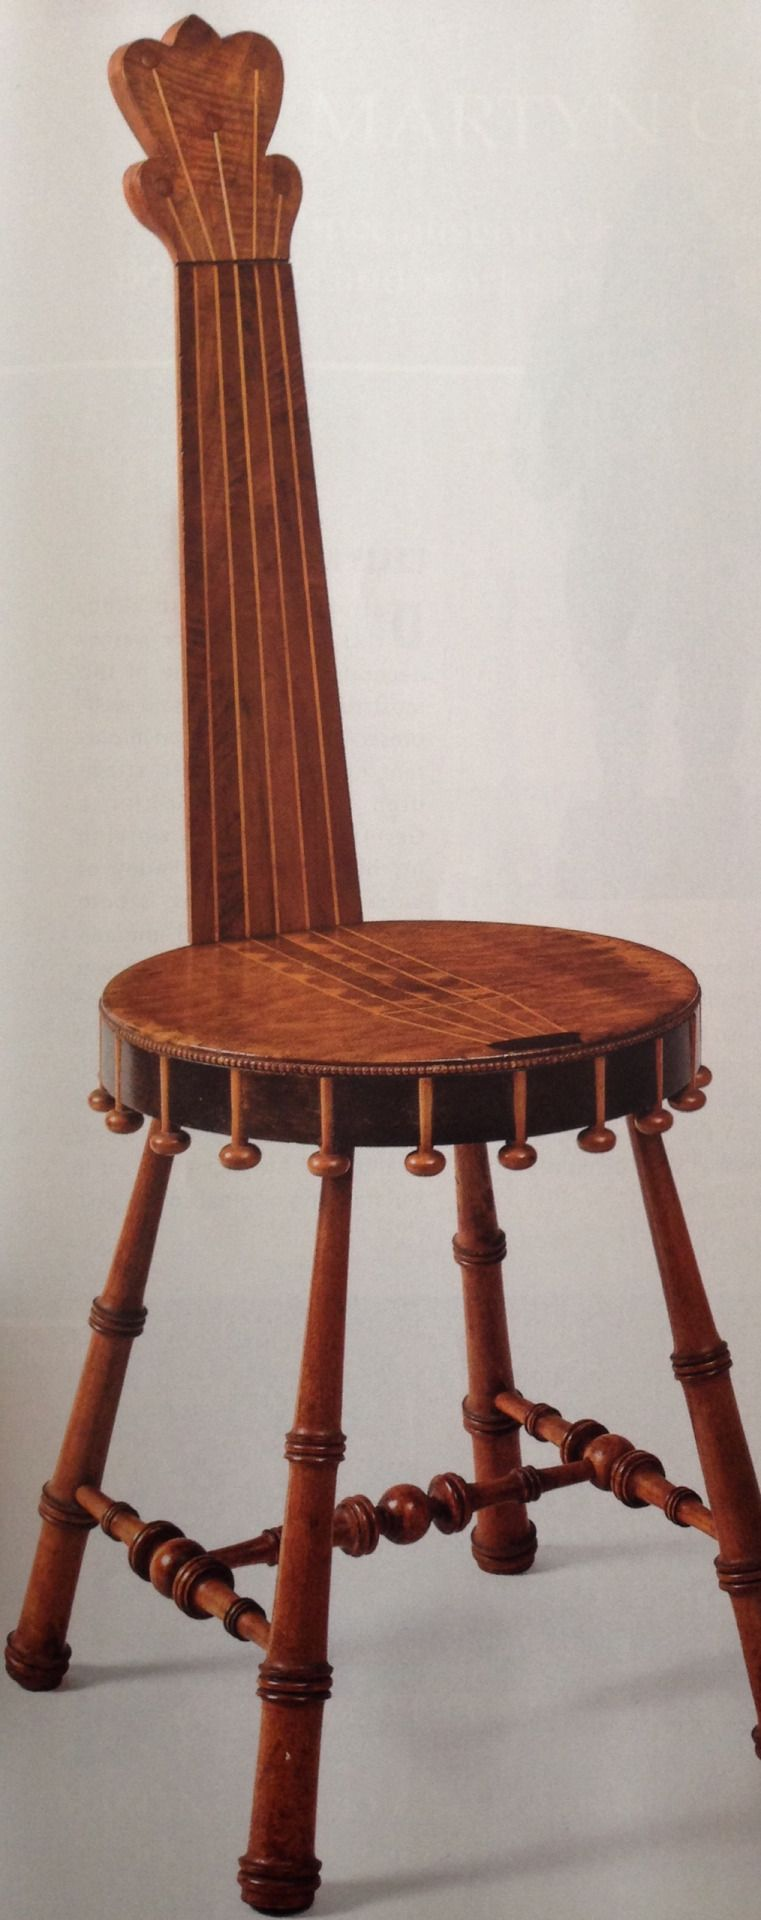 A Banjo Chair Made In New England About 1900 10